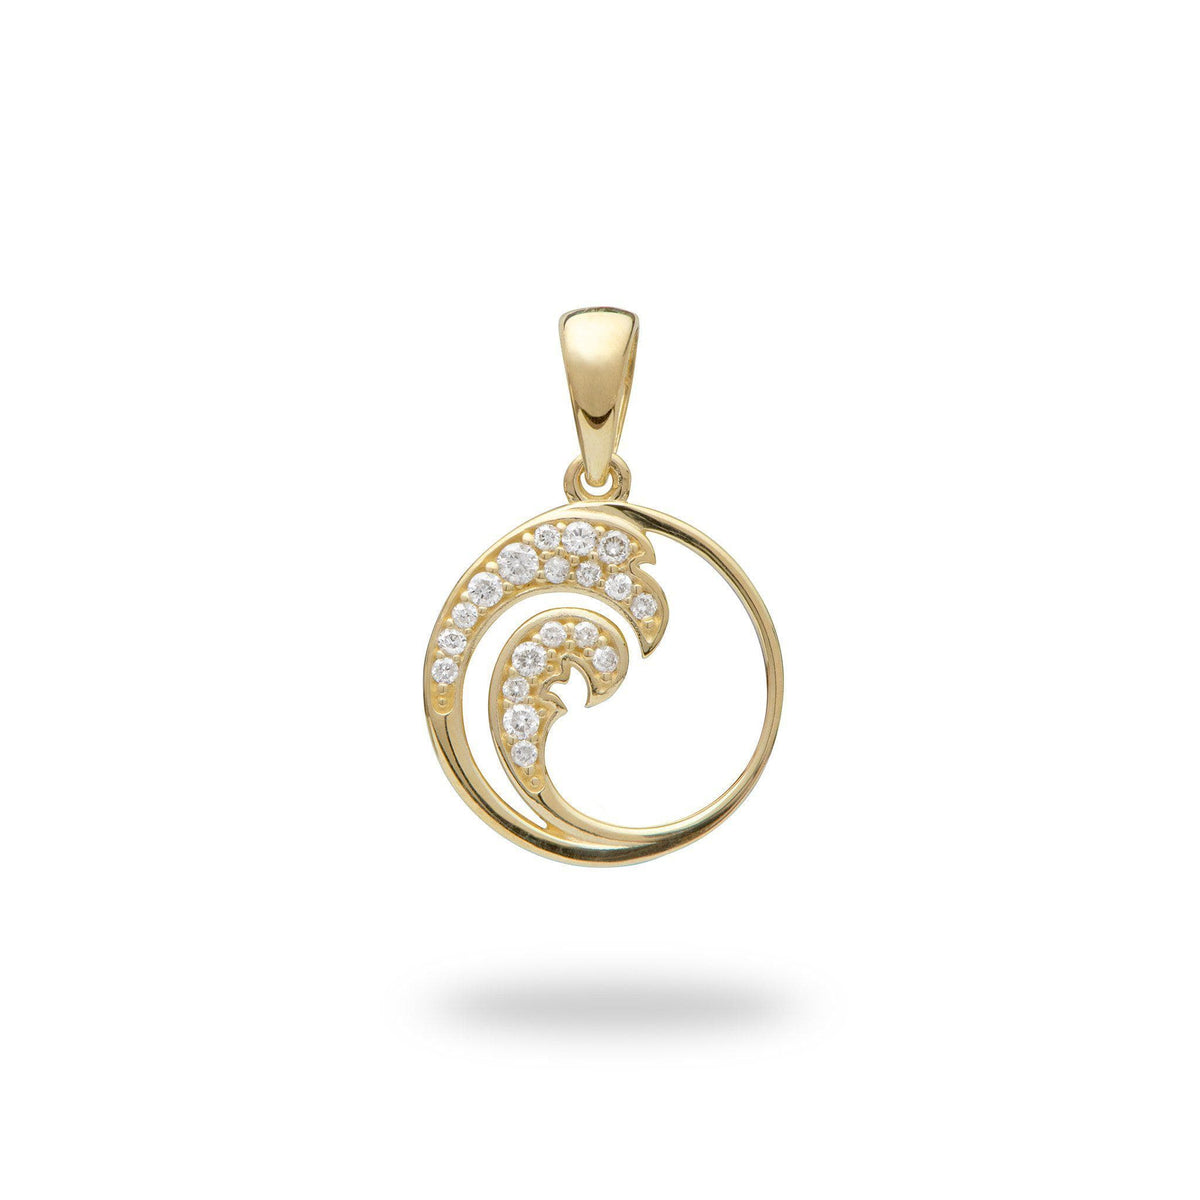 Nalu Pendant in Gold with Diamonds - 12mm-[SKU]